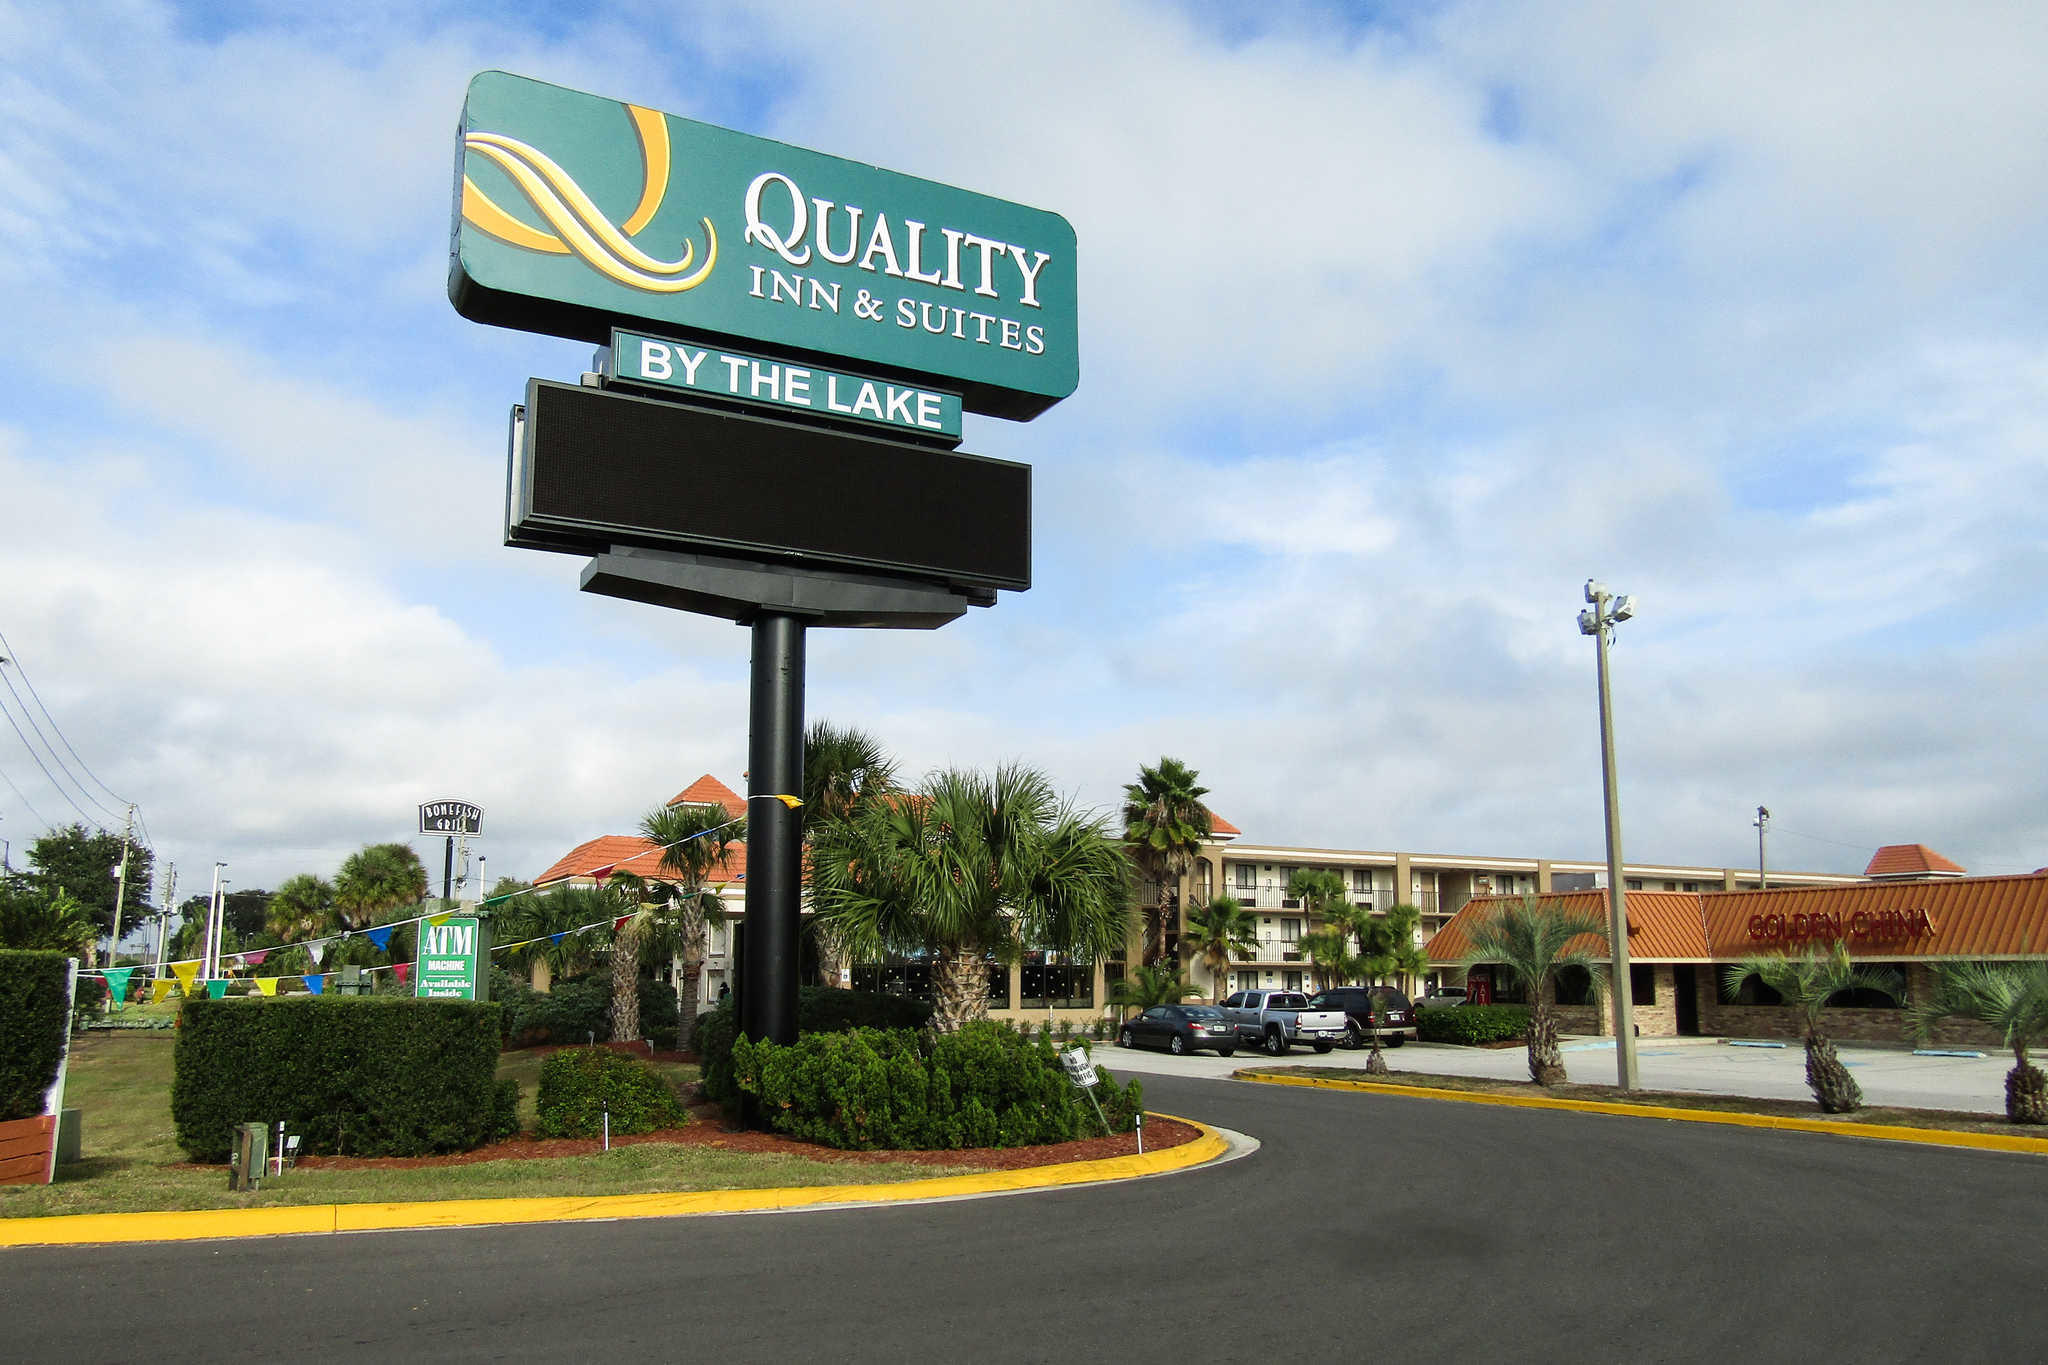 Quality Inn & Suites Kissimmee by The Lake image 4